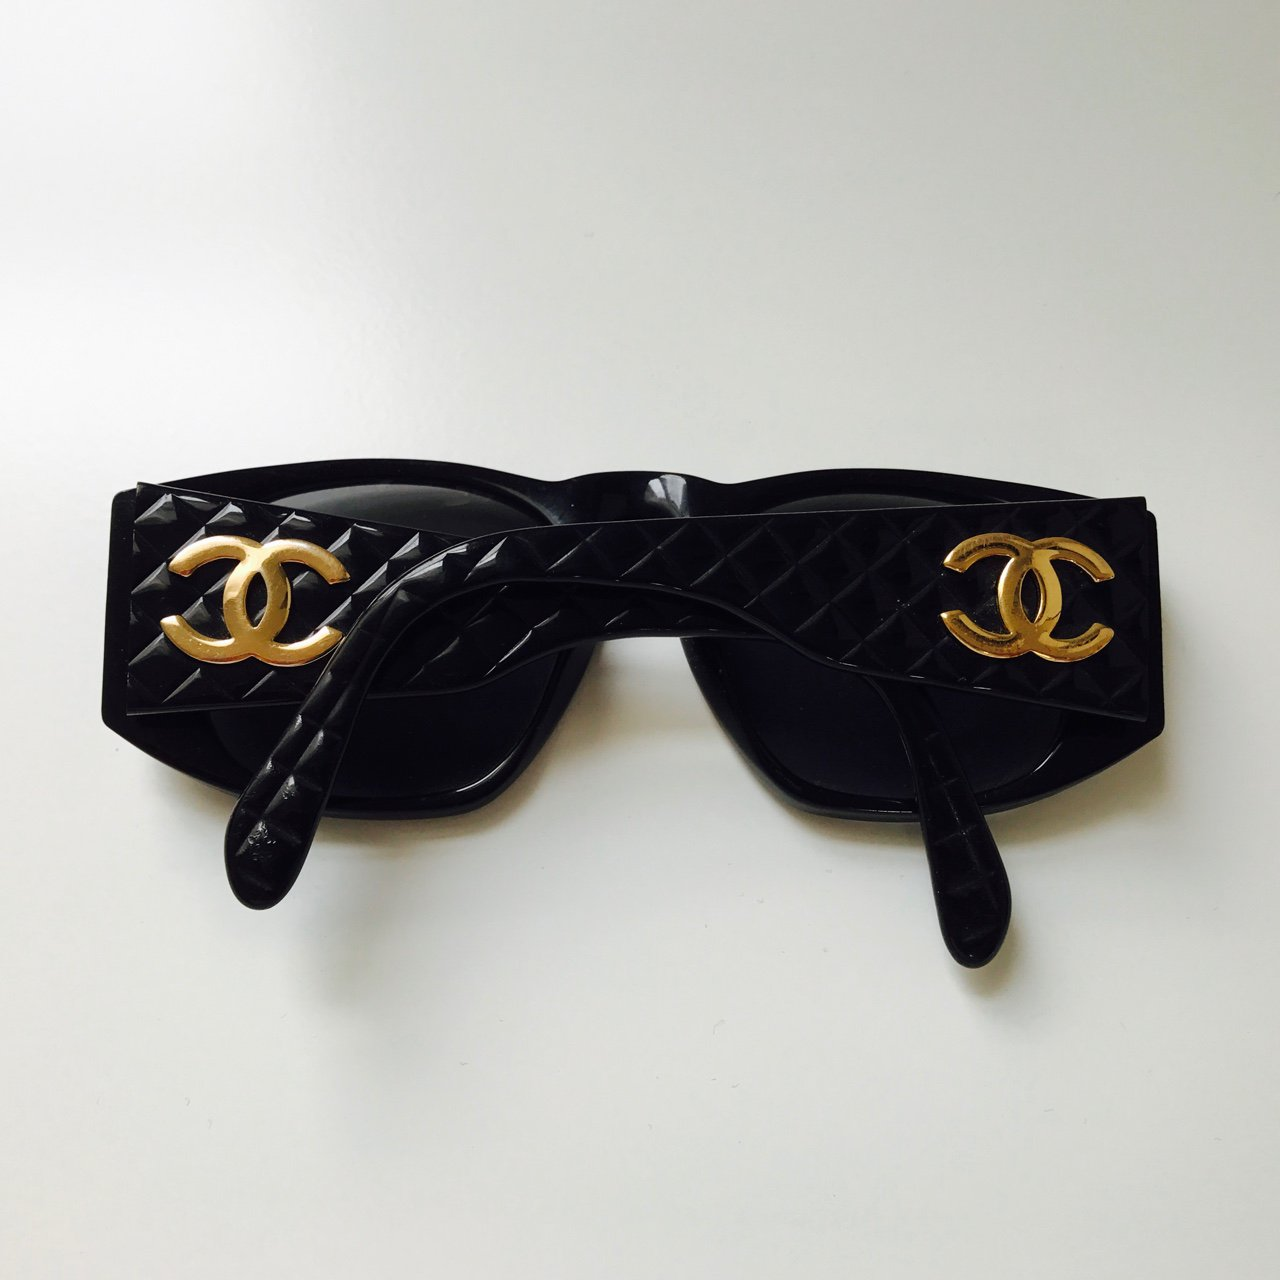 5ae7854531 Vintage chanel sunglasses quilted sides with chanel logo in depop jpg  1280x1280 Vintage chanel sunglasses